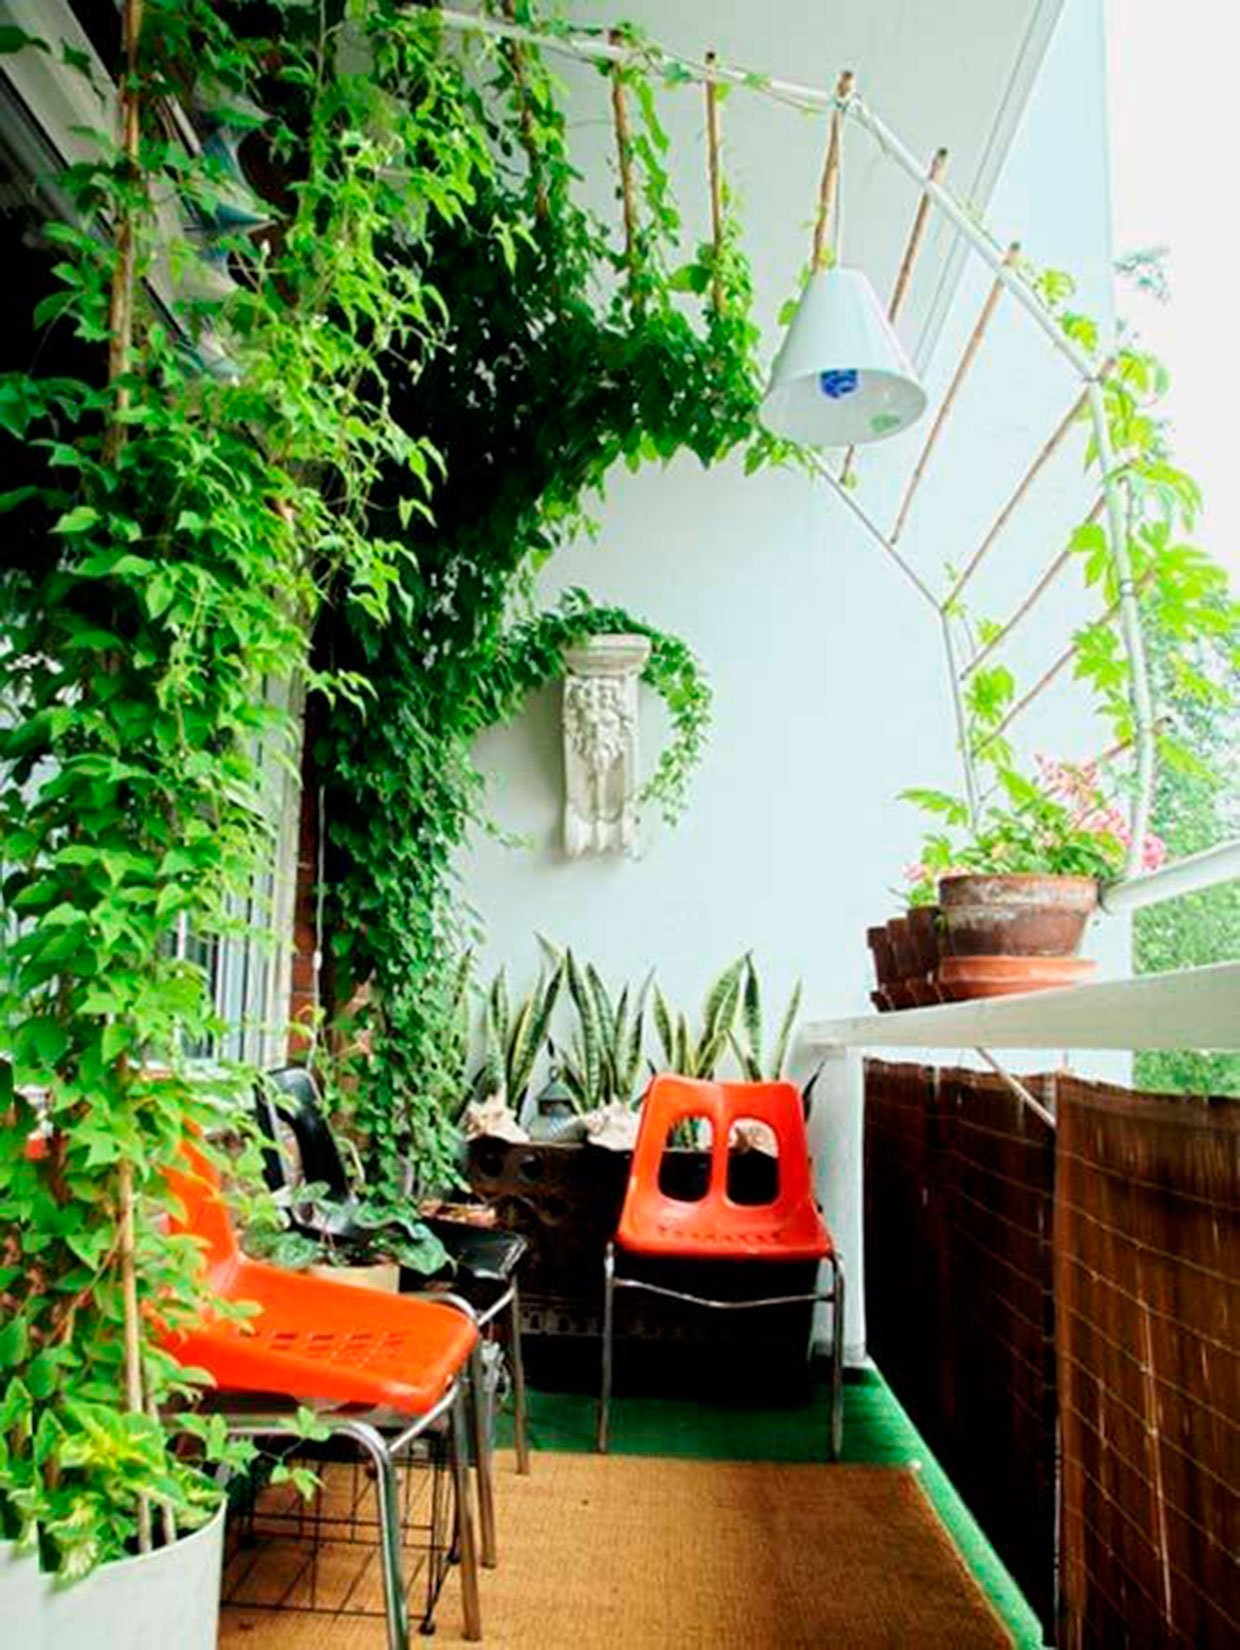 Grande 2018 Balcony Gardening Ideas Tropical Privacy Balcony Garden Ideas Designs garden Balcony Gardening Ideas